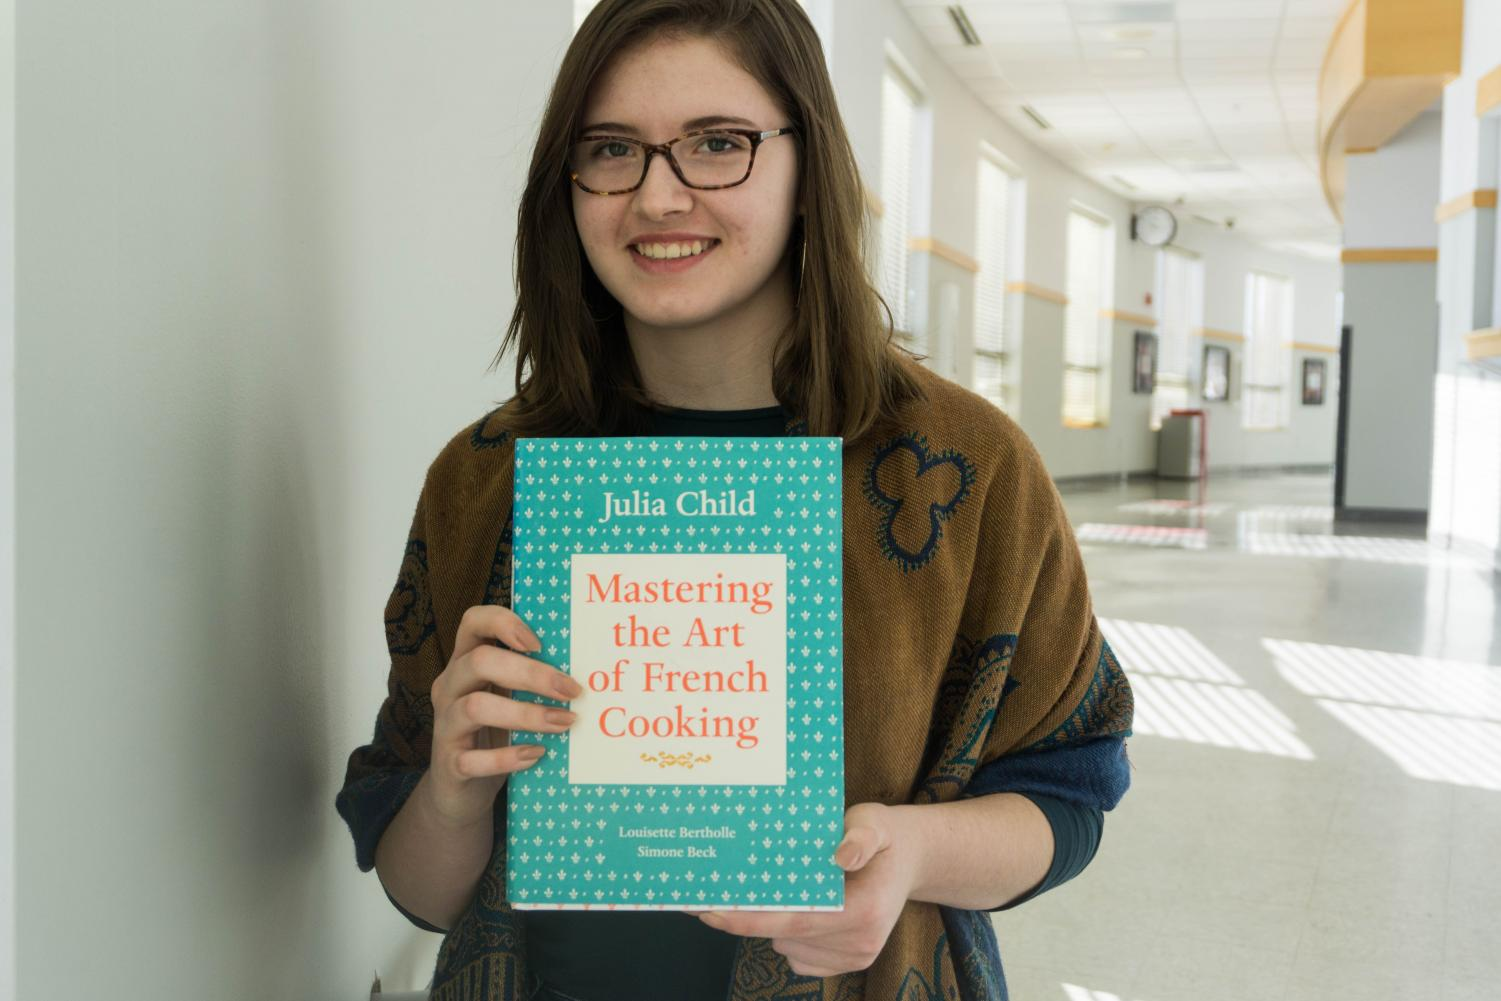 Junior Grace Bacon channelled her passion for cooking by taking on some of renown chef Julia Child's recipes.